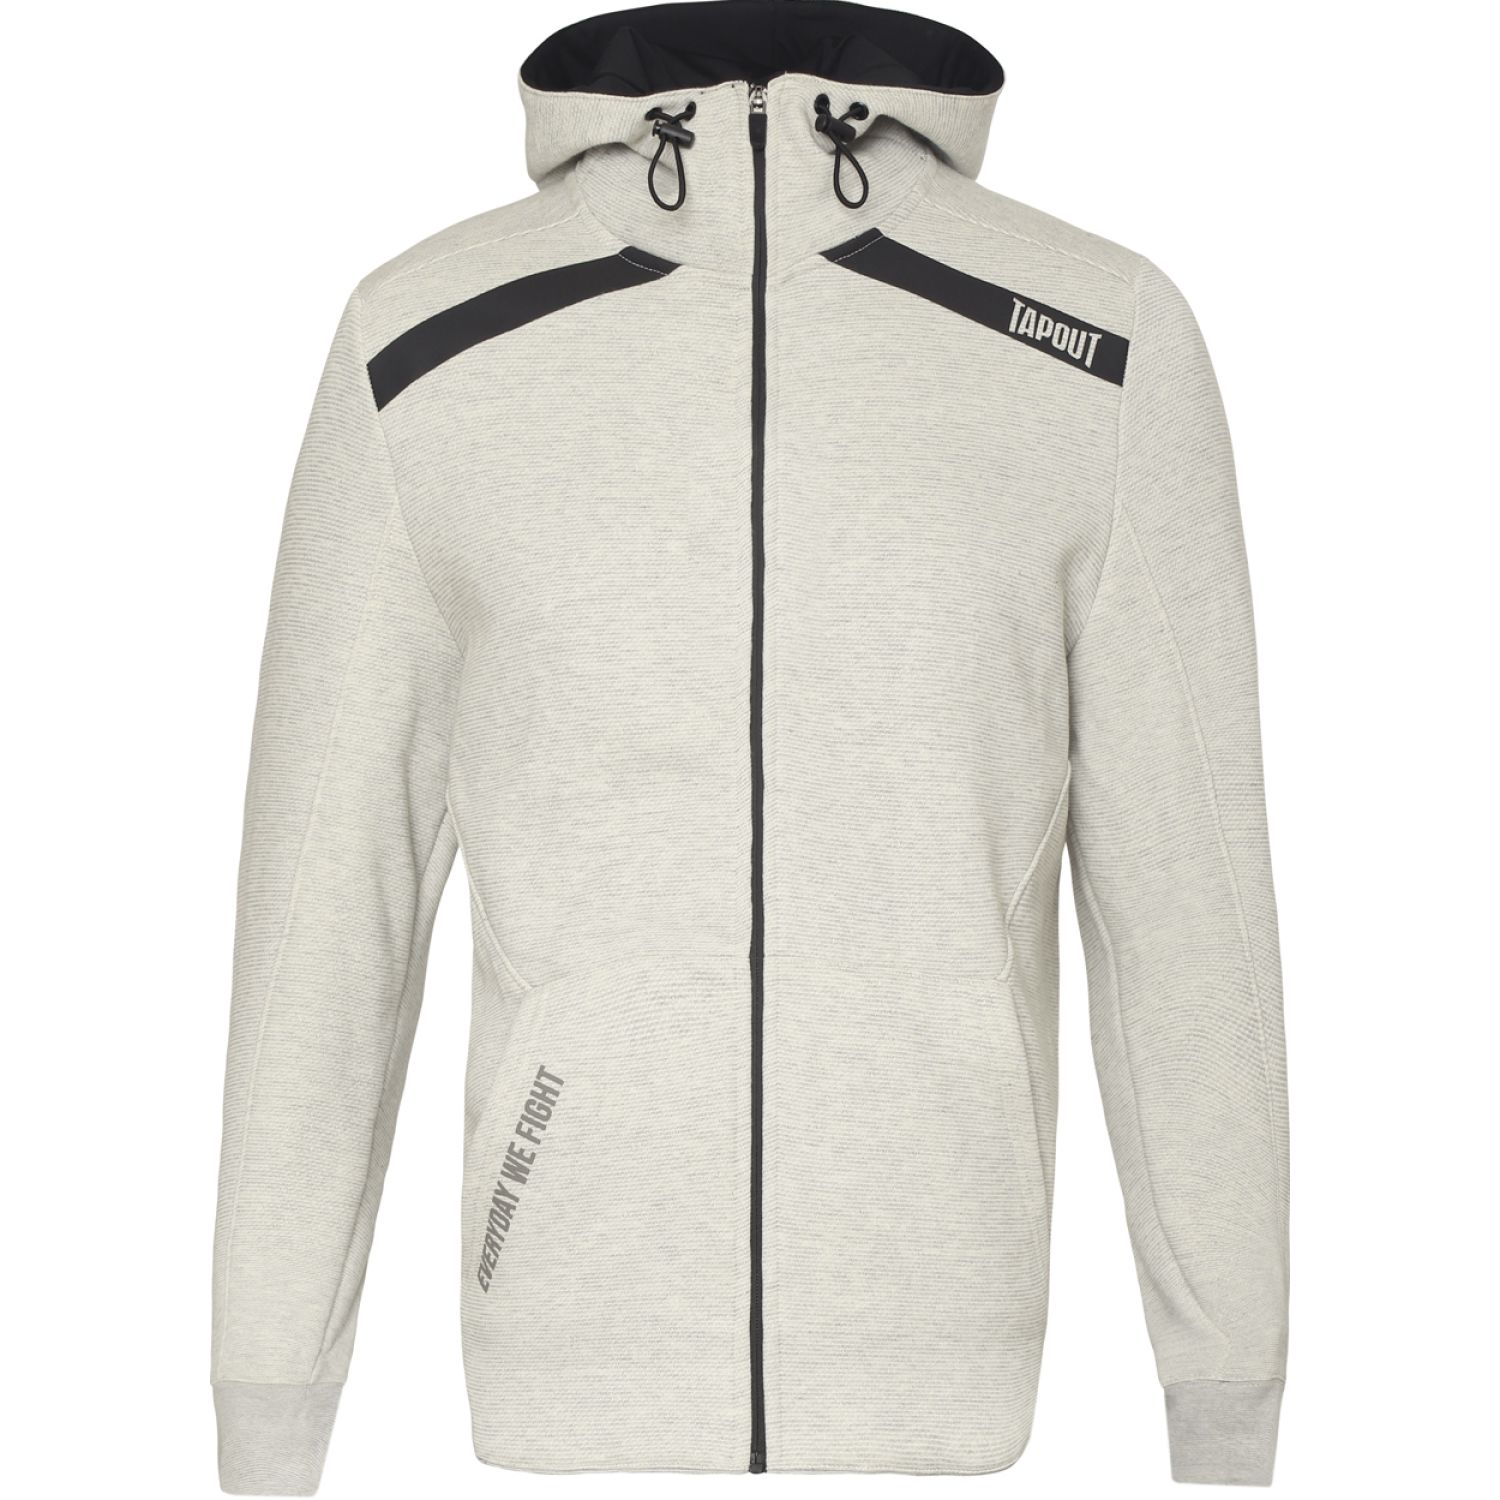 TAPOUT POLERA CASUAL KONGO ALGODÓN Plata Hoodies y Sweaters Fashion